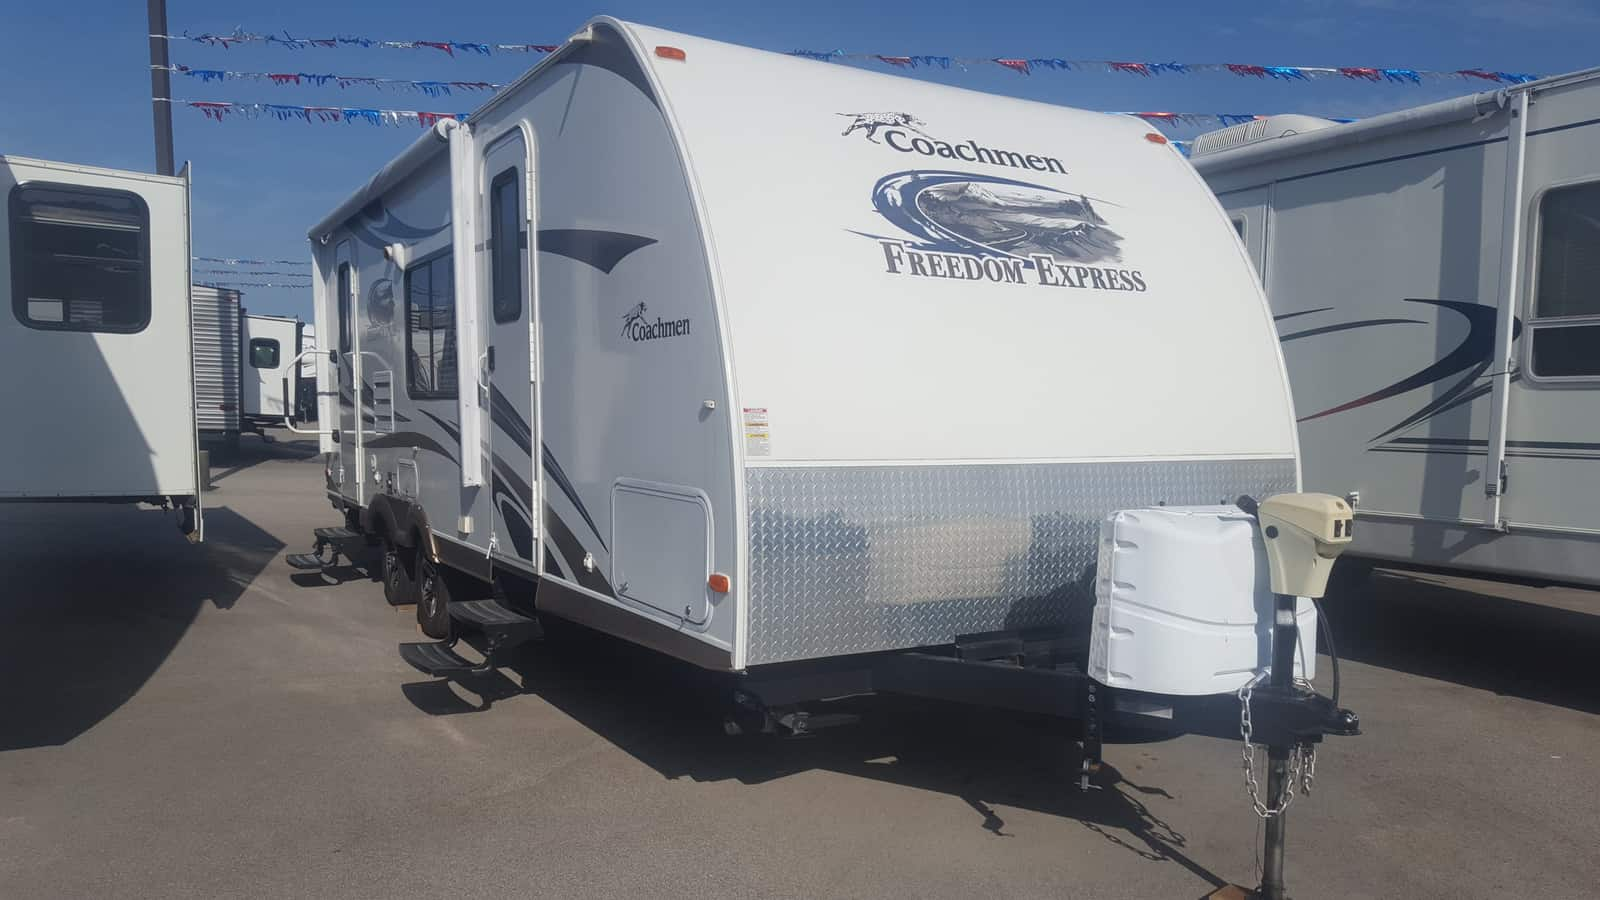 USED 2013 Coachmen FREEDOM EXPRESS 242RBS - American RV